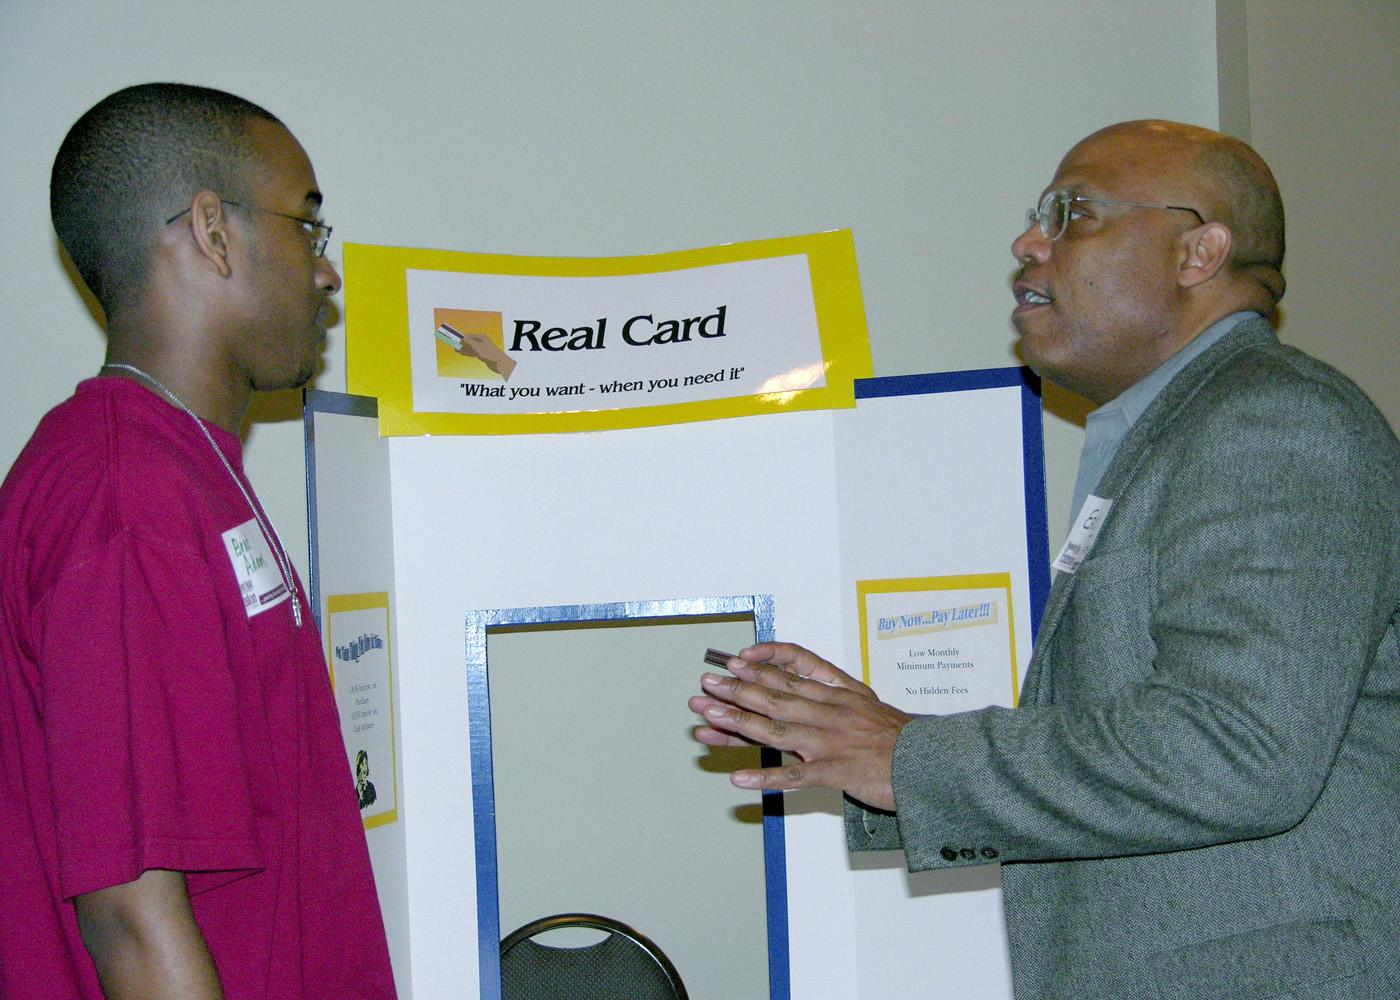 Brad Adams, a member of the Grenada High School's 4-H Leadership Club, listens to his options for a credit card from Eric Tate, playing the role of a credit card company representative in a Reality Check simulation. Tate, the director of human resources at Heatcraft in Grenada, was a resource volunteer assisting in a real-life simulation designed to enhance financial lessons.